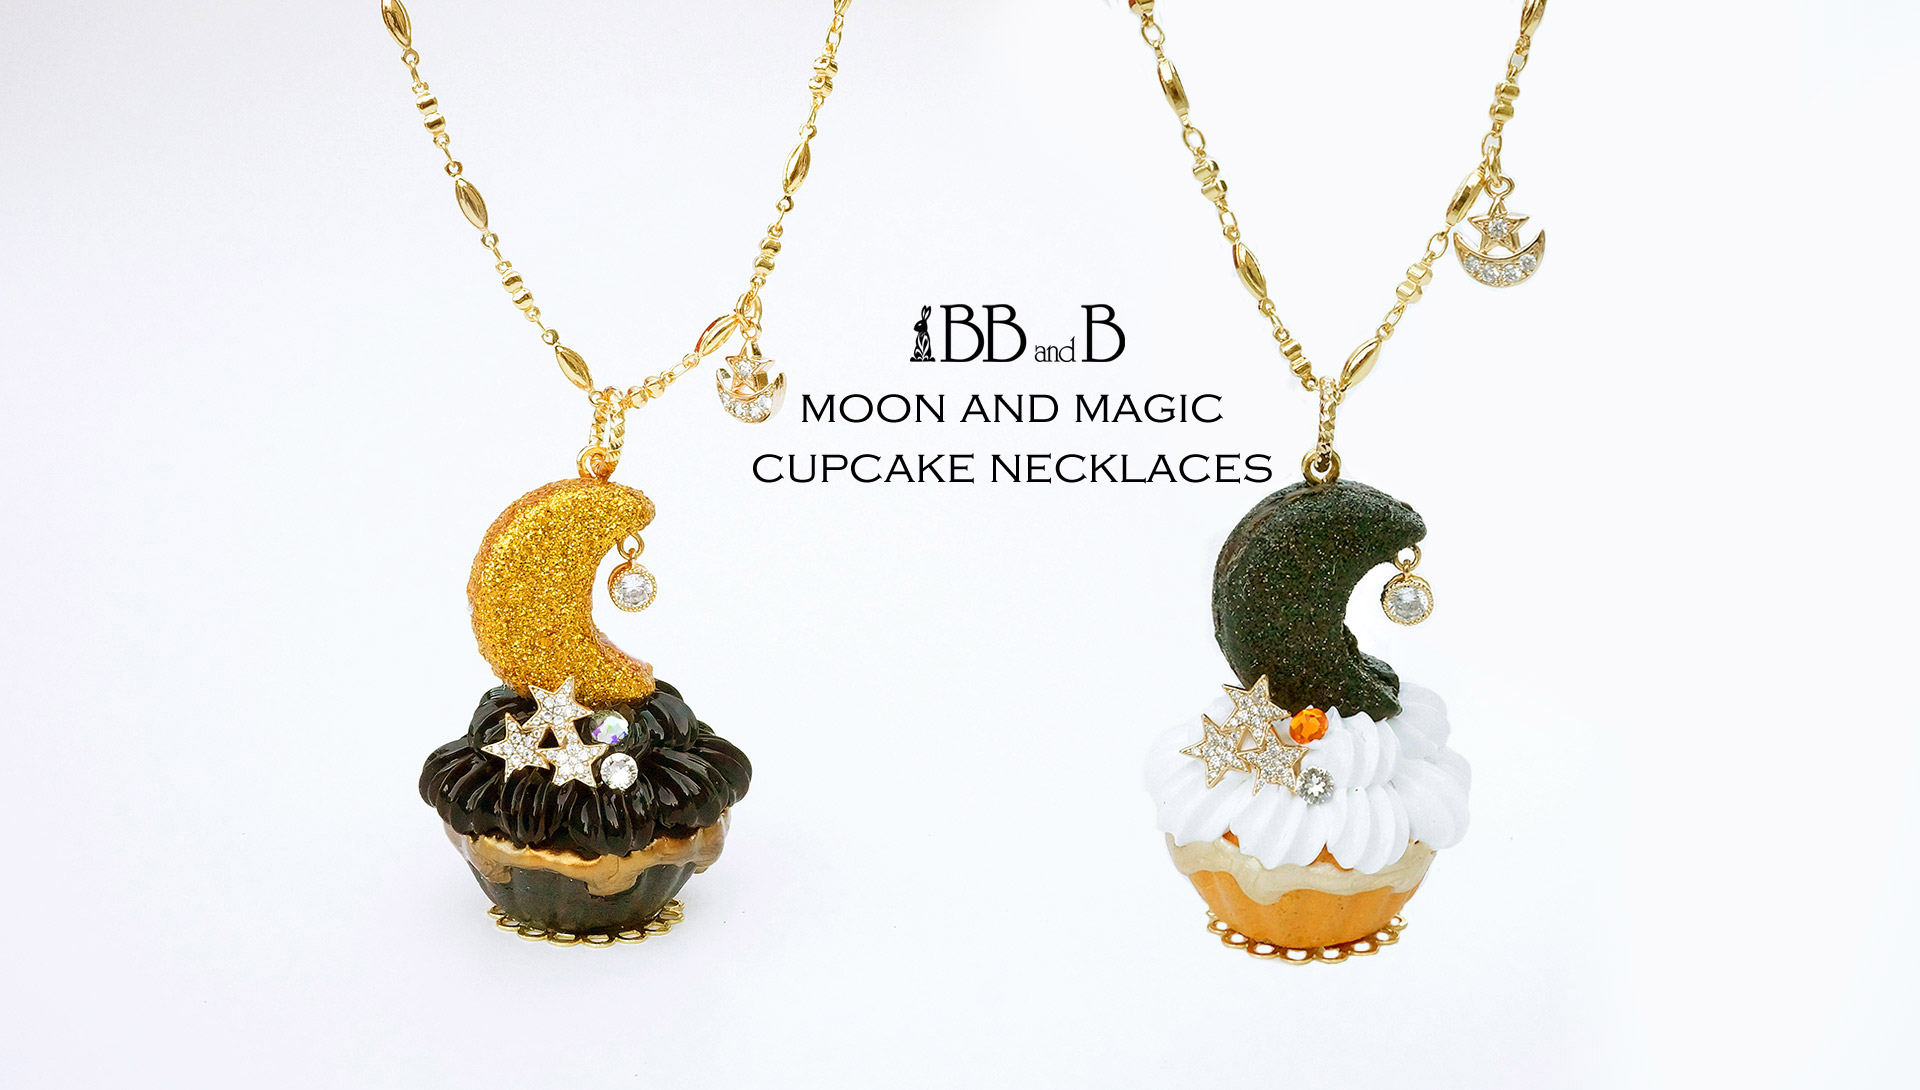 BB and B Moon and Magic Cupcake Necklace